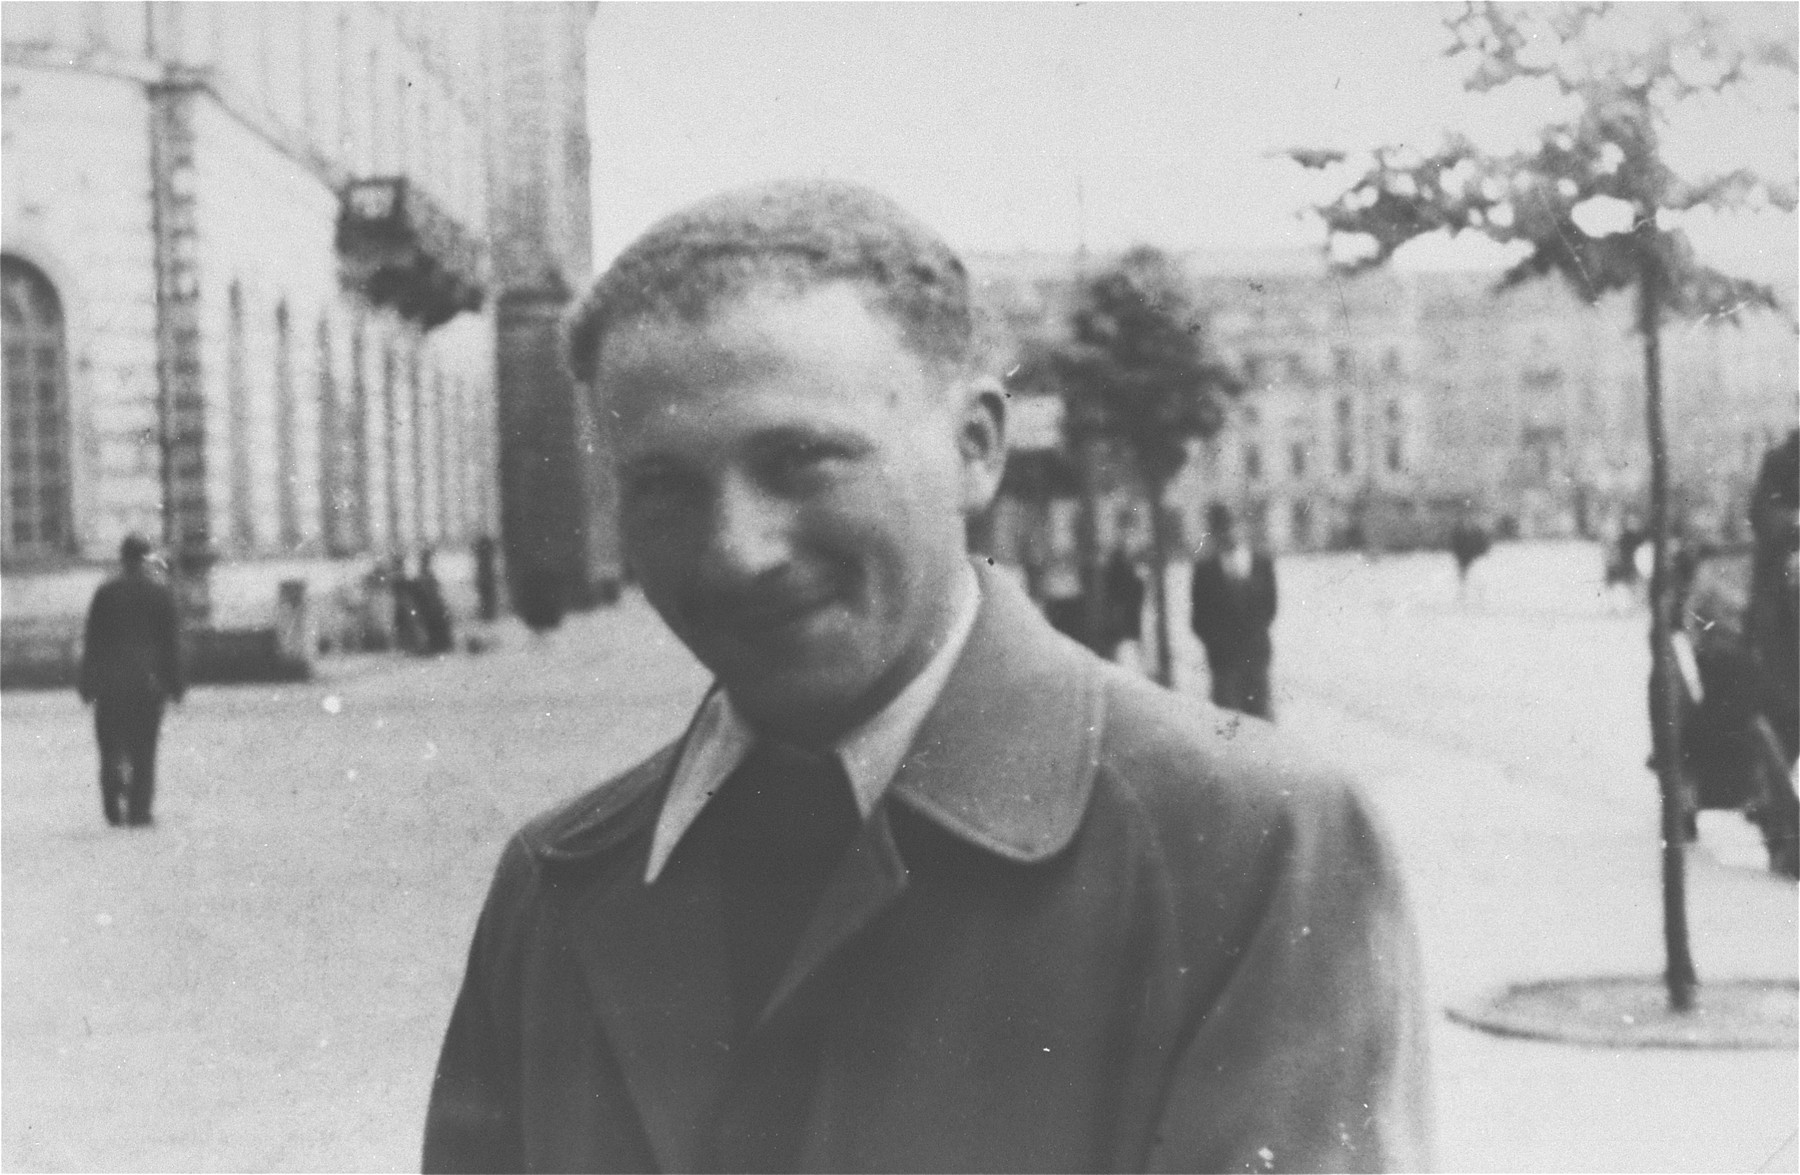 Benjamin Miedzyrzecki, a member of the Jewish underground living in hiding on false papers, poses in Plac Teatralny (Theater Square) on the Aryan side of Warsaw.